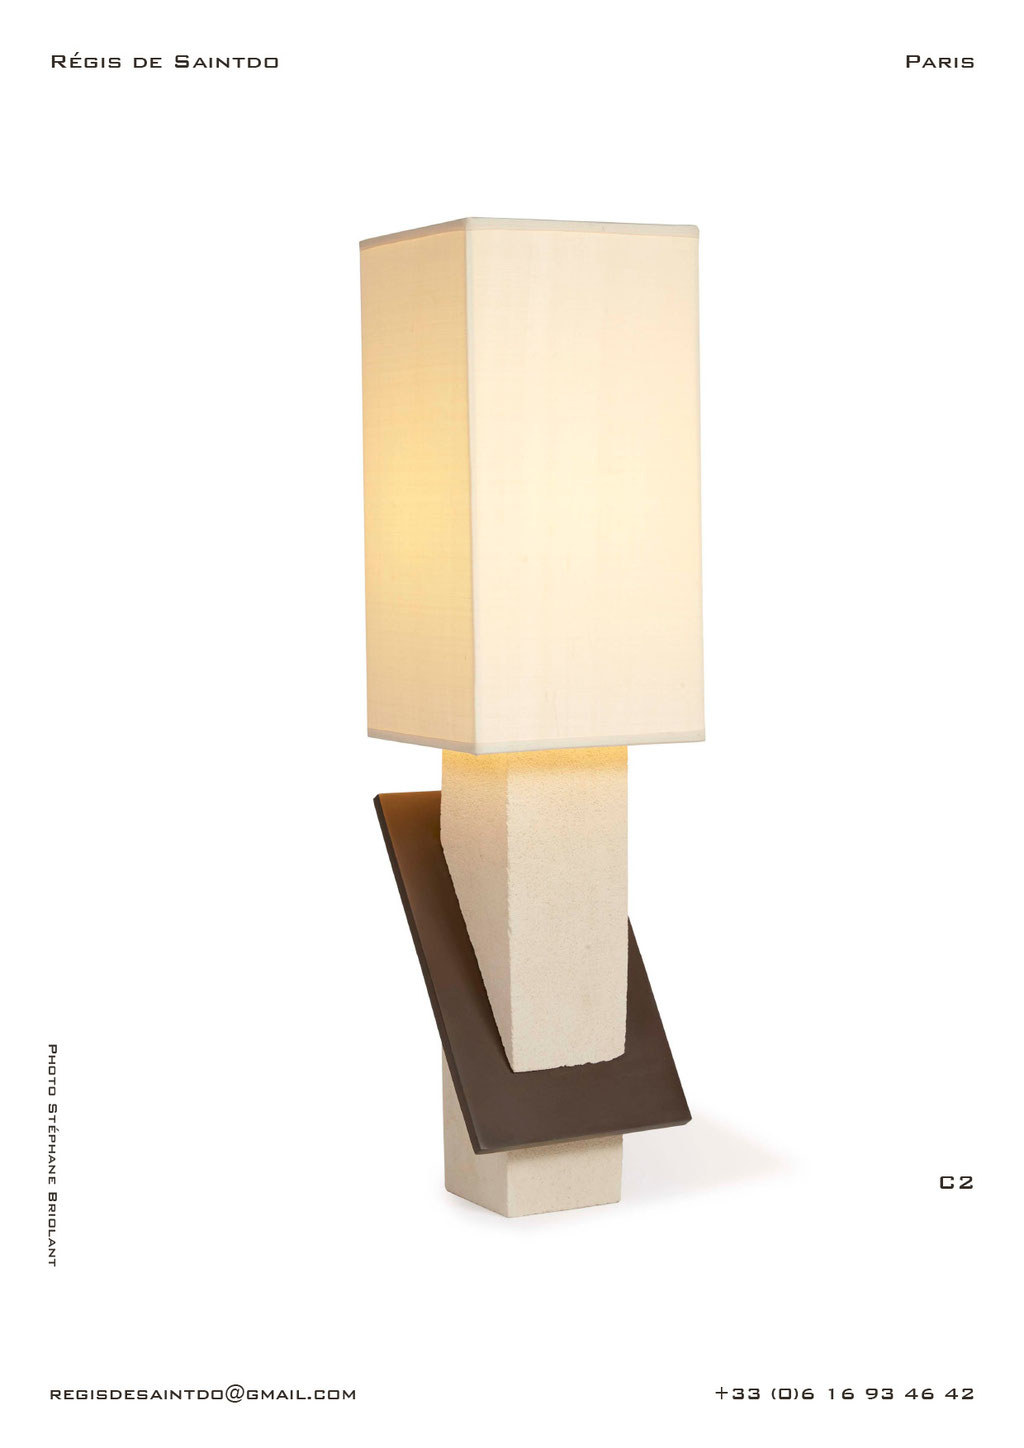 Lamp-C2-white-rough-brown-polished-handmade-unique